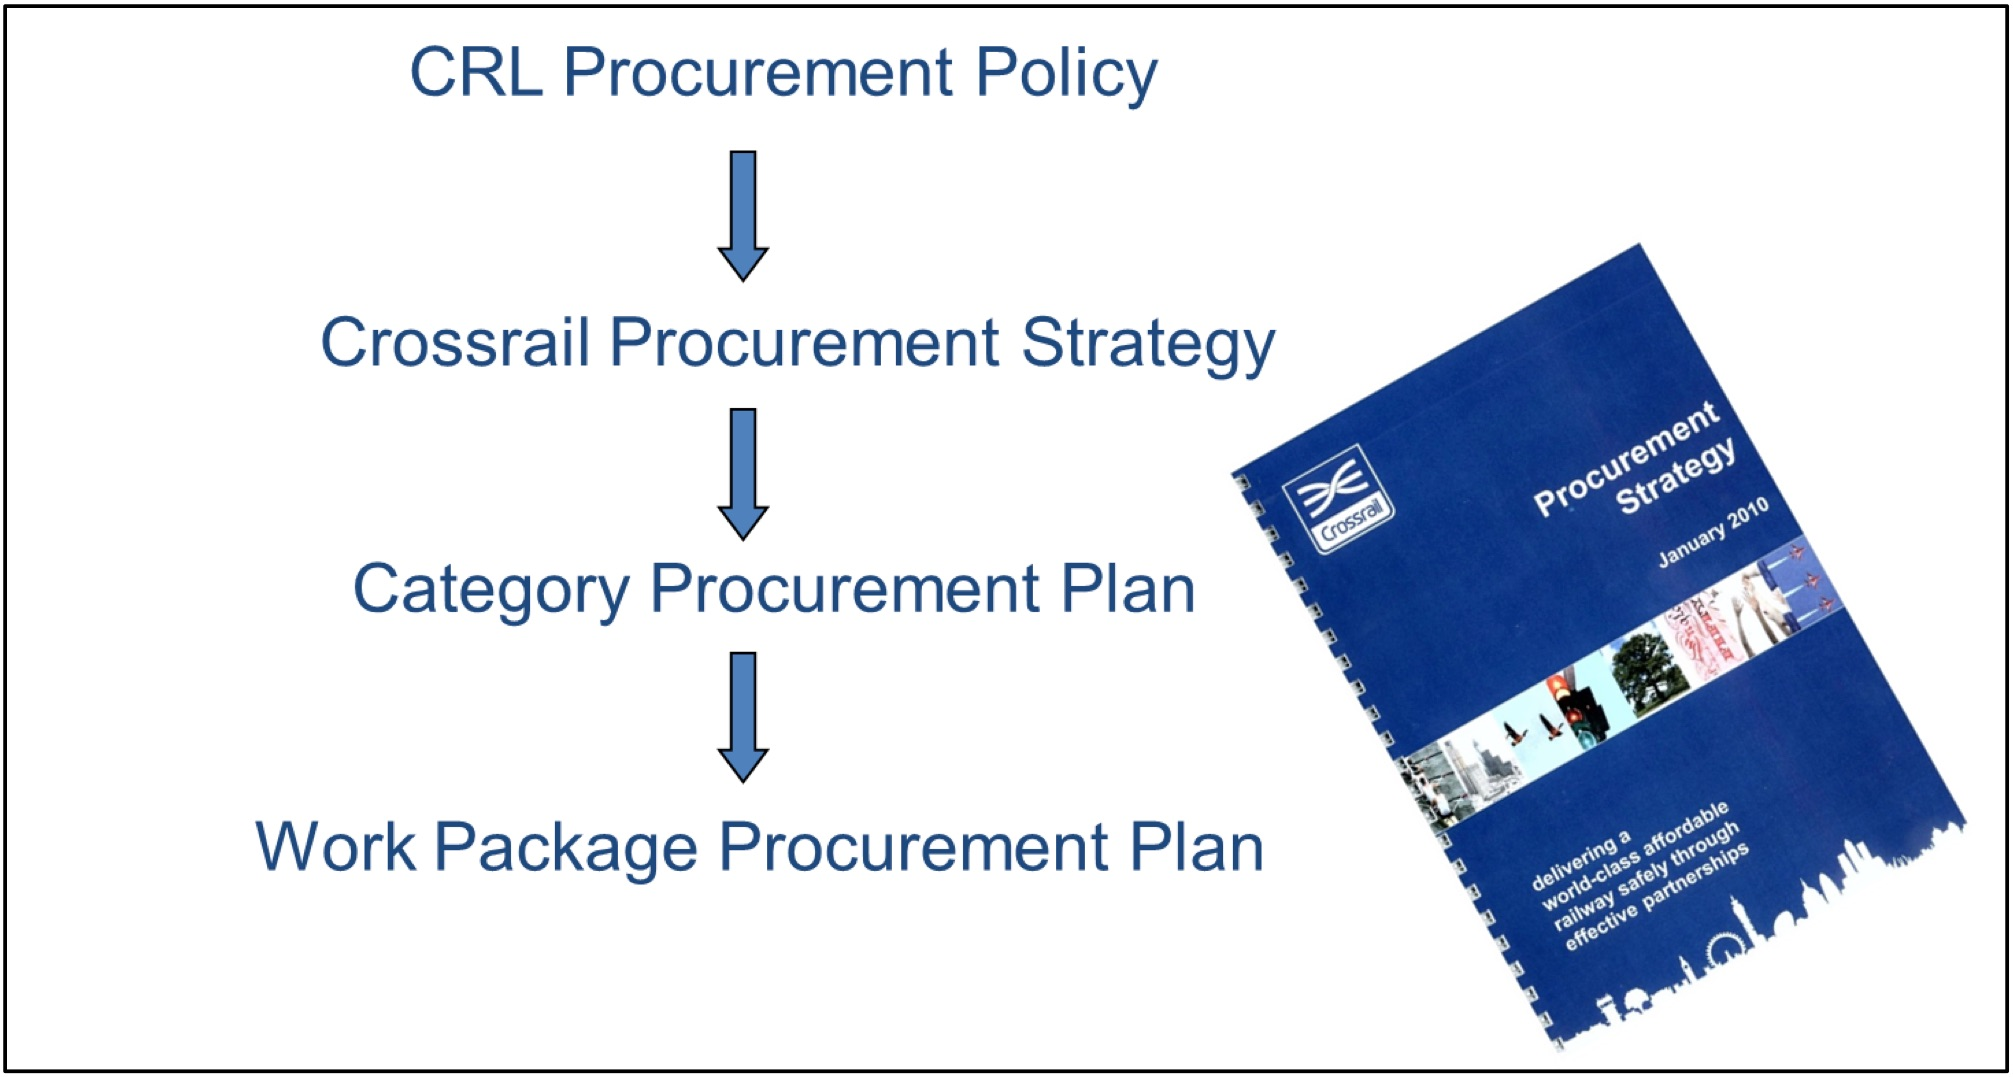 2A 001 Figure 9 Hierarchy of procurement policies and plans.jpg